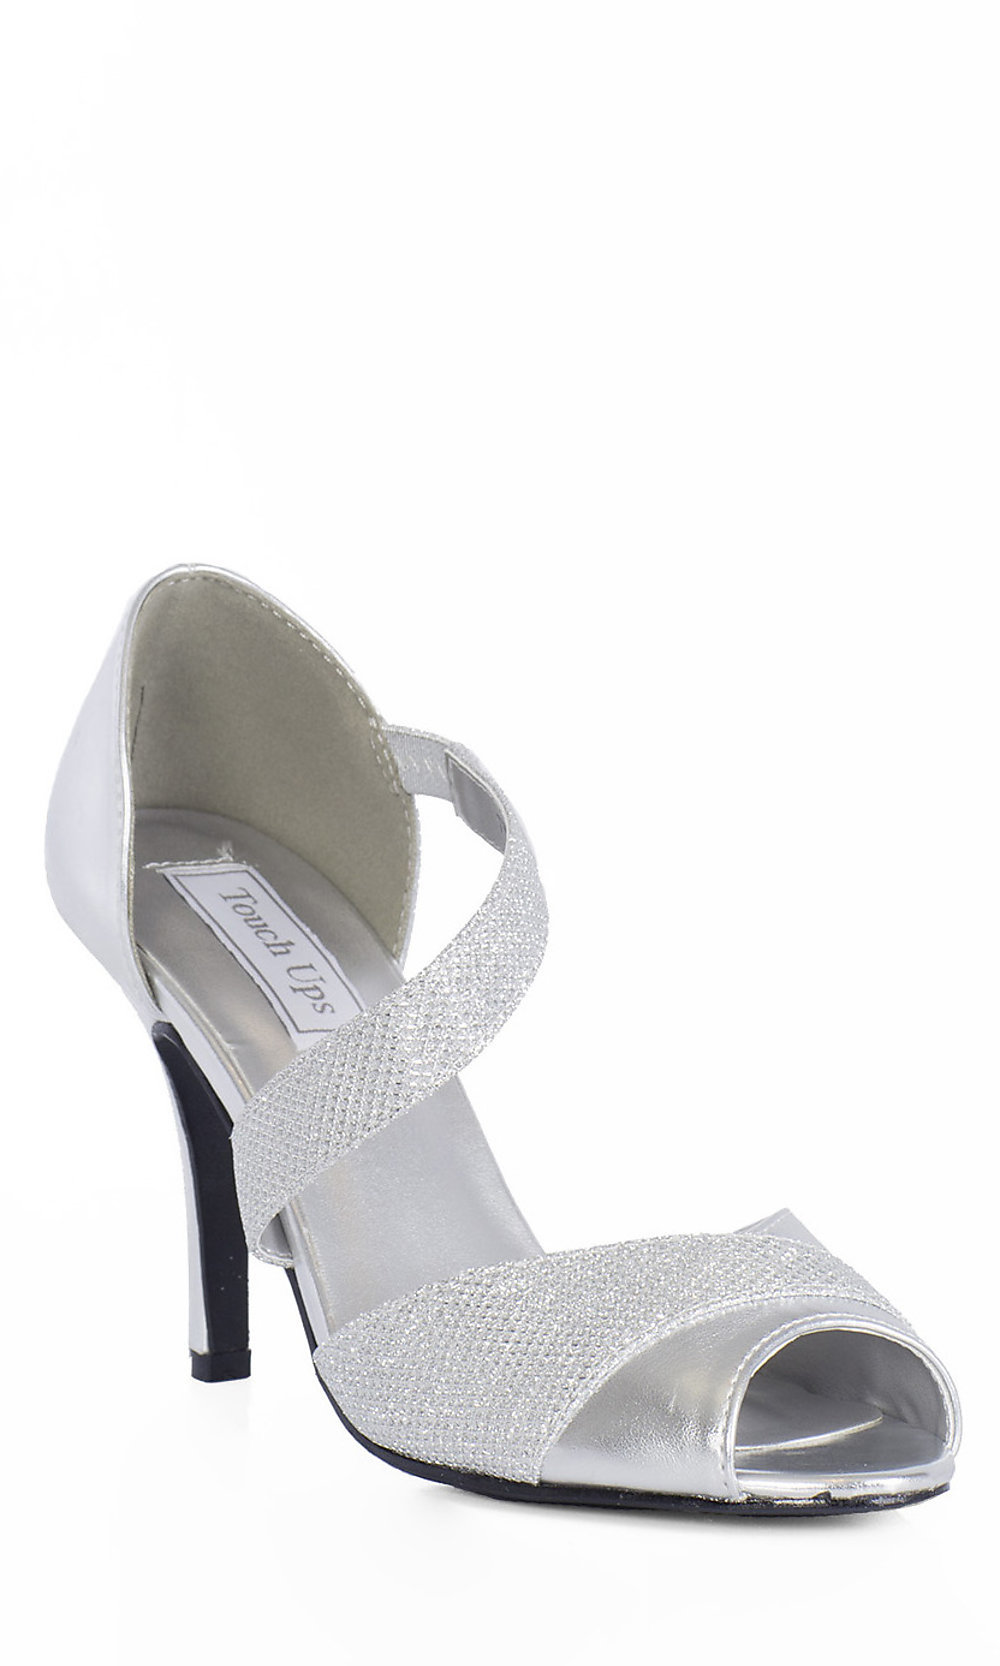 3 Silver Metallic Adeline Prom Shoes